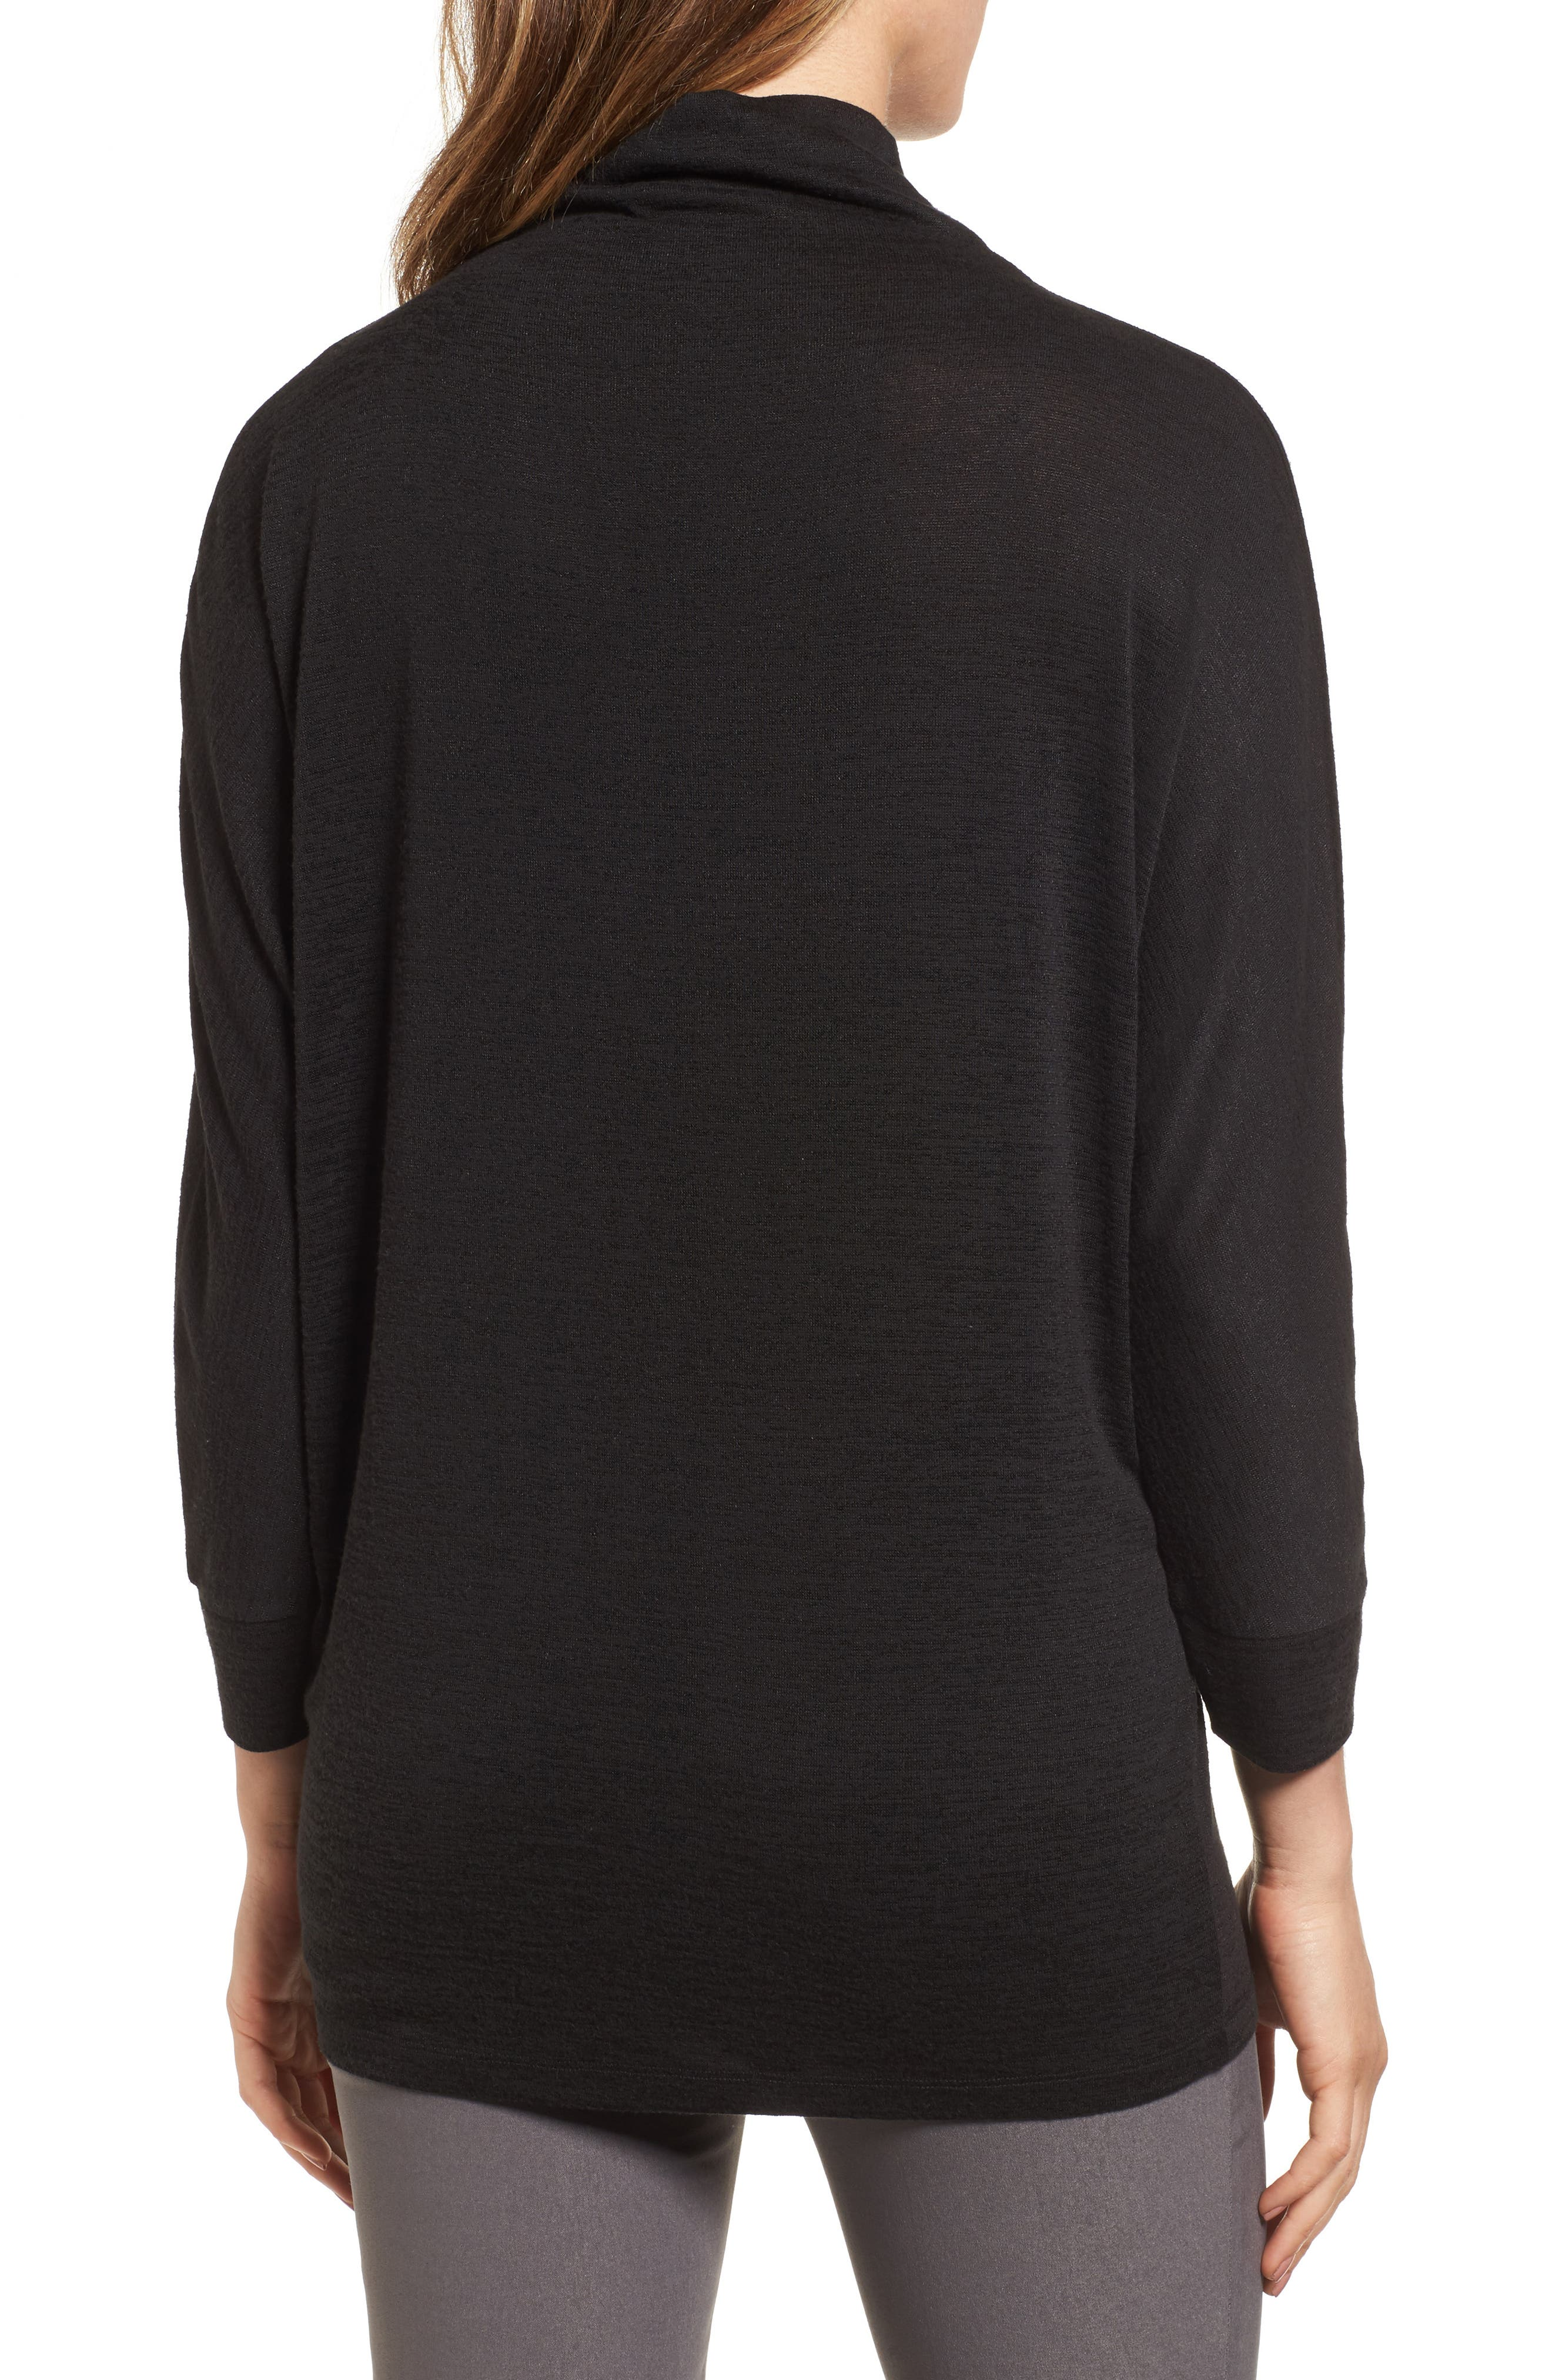 Every Occasion Mockneck Top,                             Alternate thumbnail 2, color,                             004